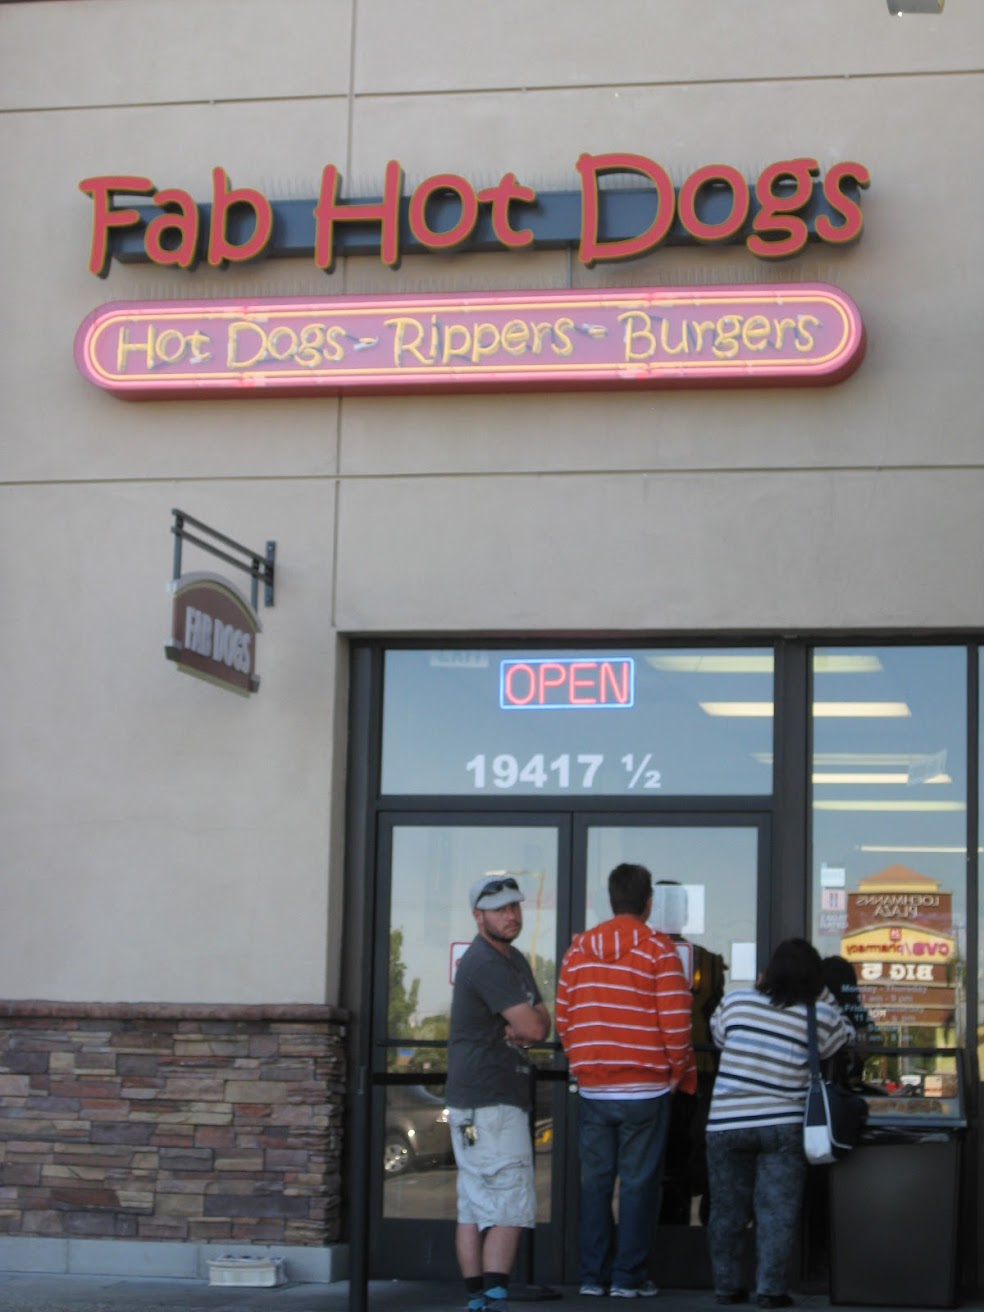 fab hot dogs los angeles valley, best tasting hot dog los angeles, great hot dogs